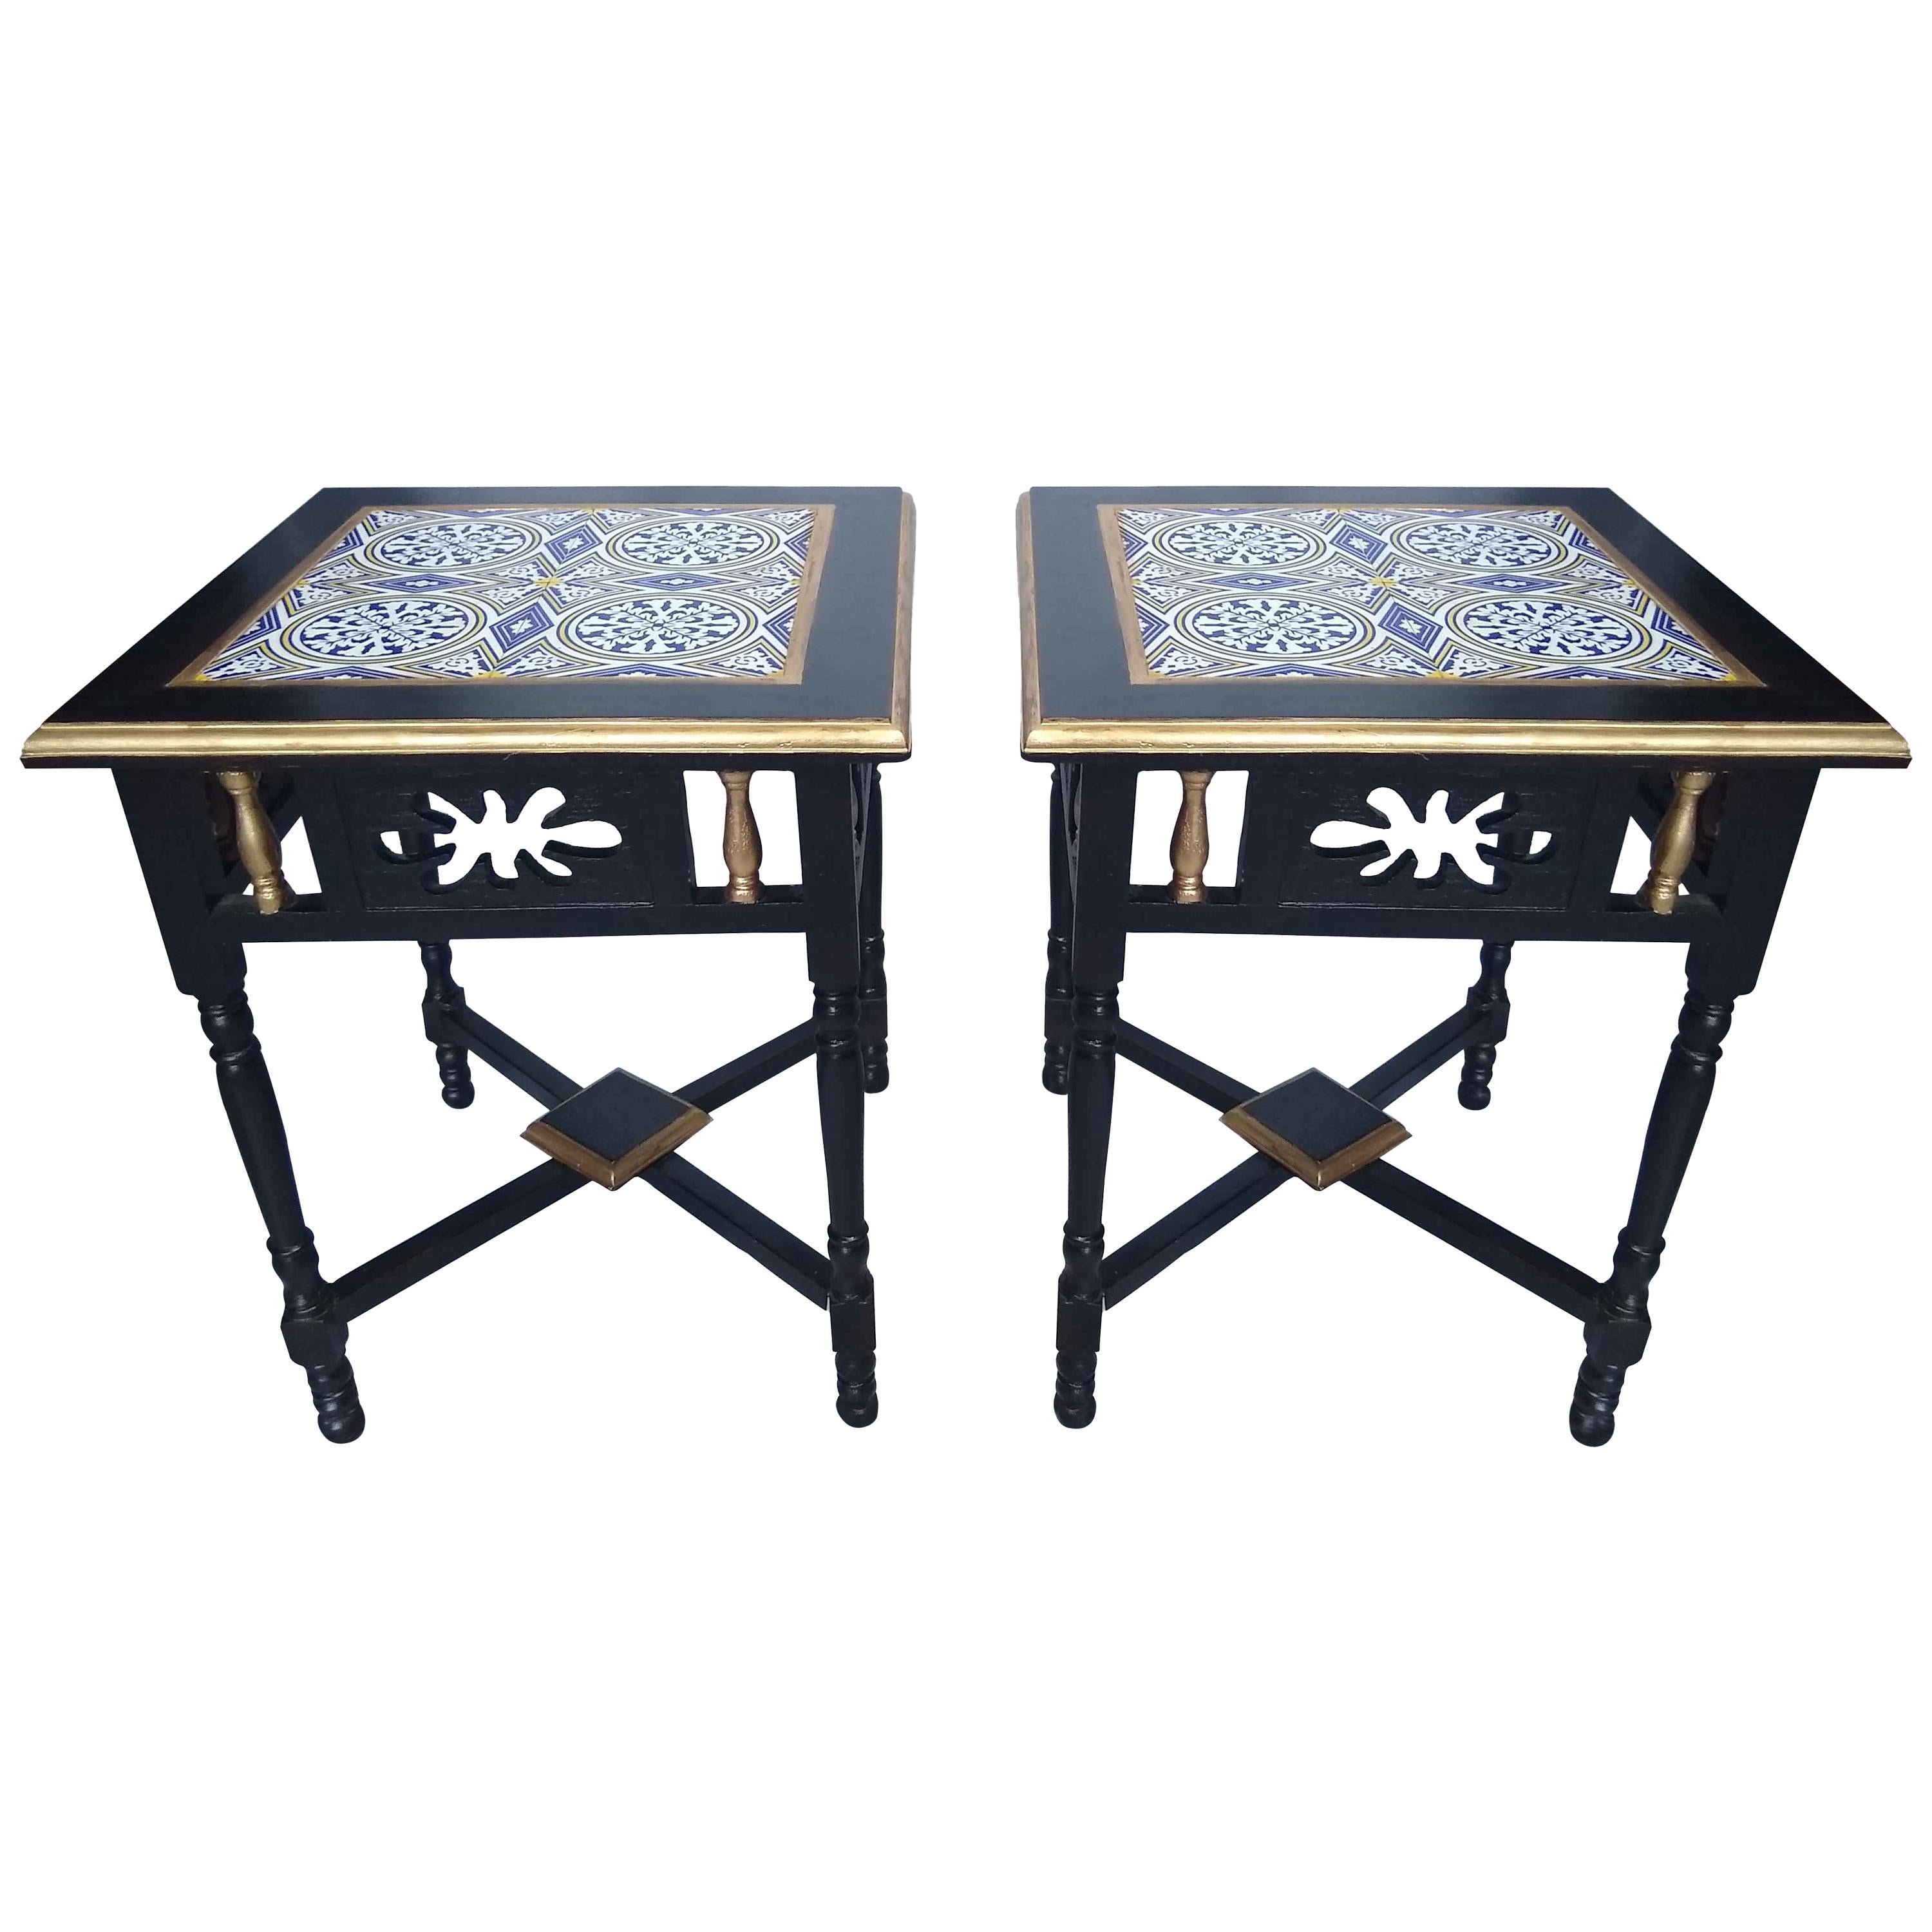 Pair of Rosewood and Tile Side Tables, 1970s